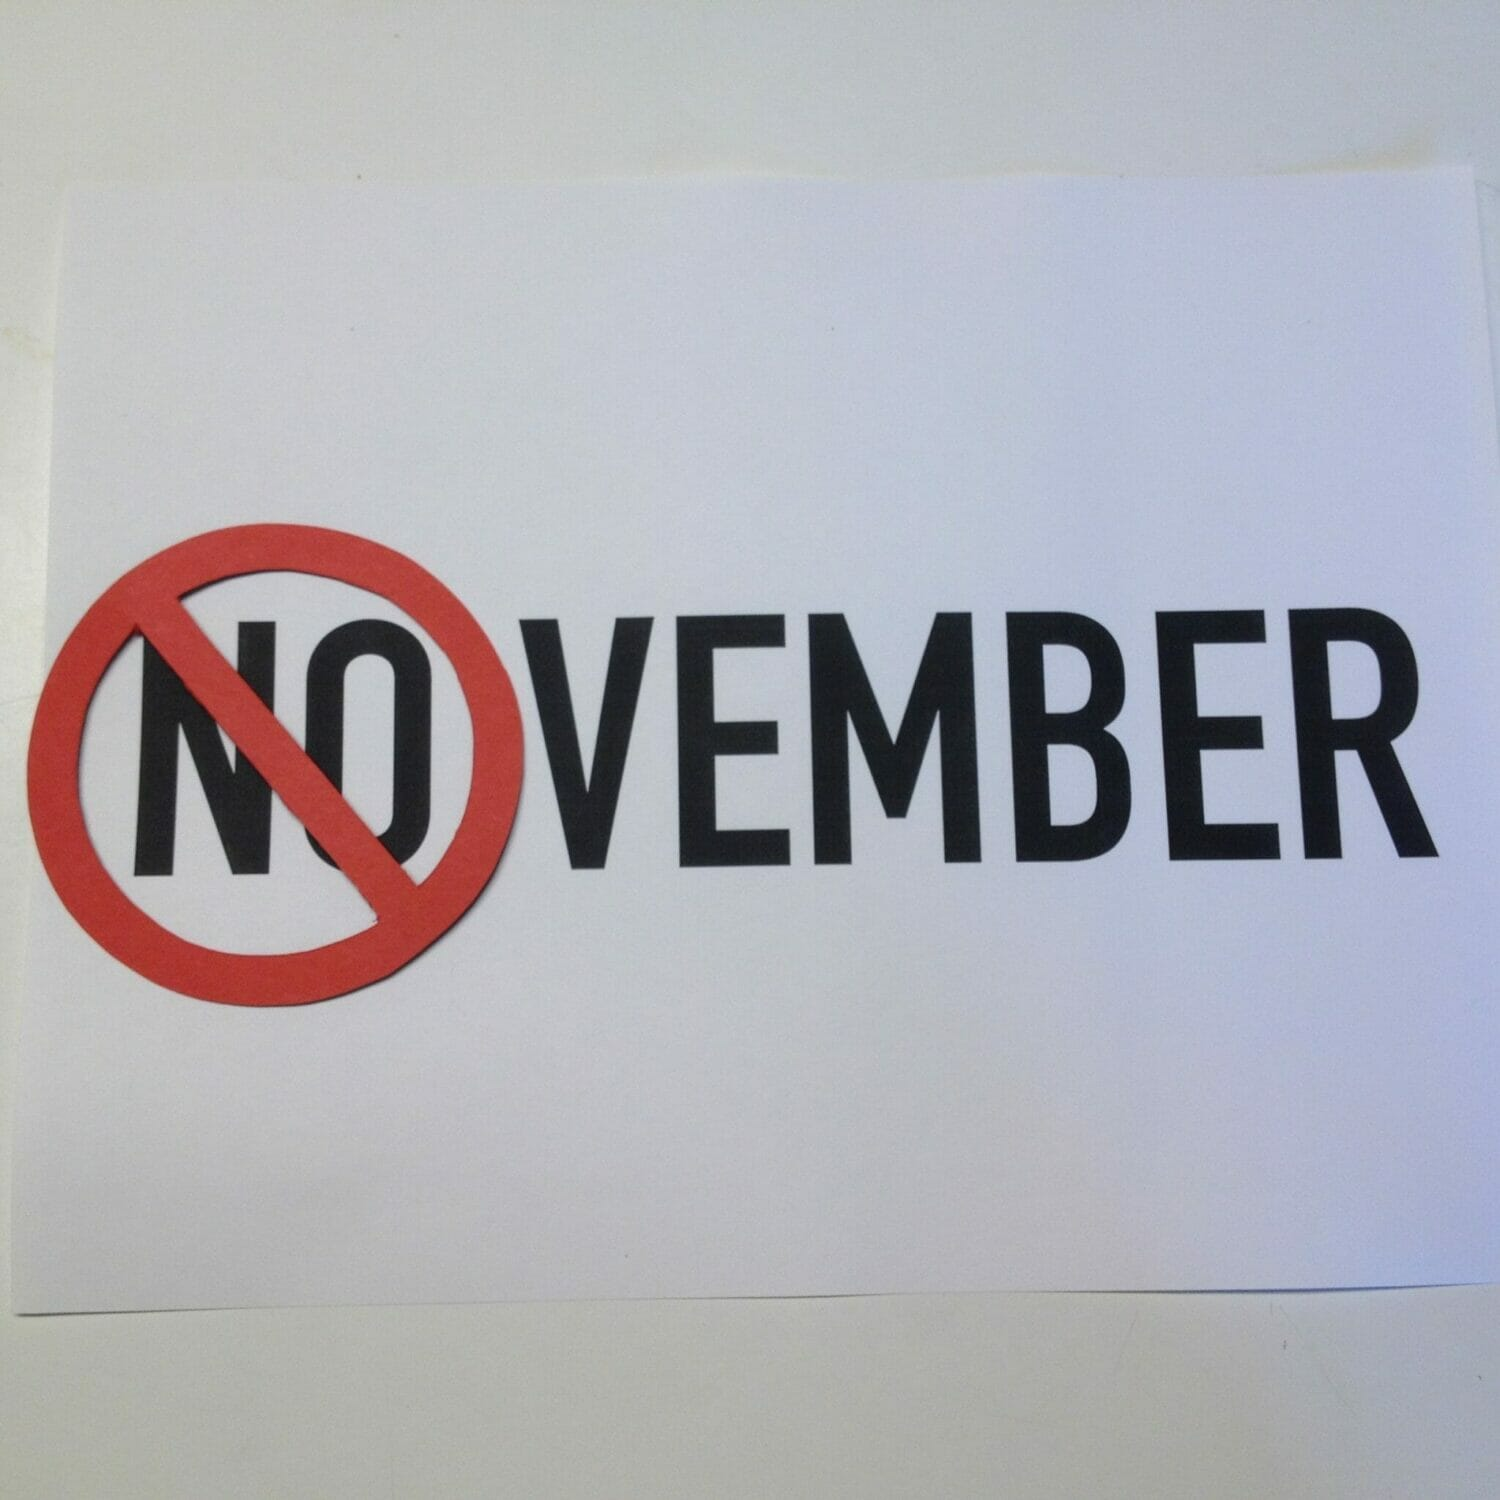 Do you need NO November?